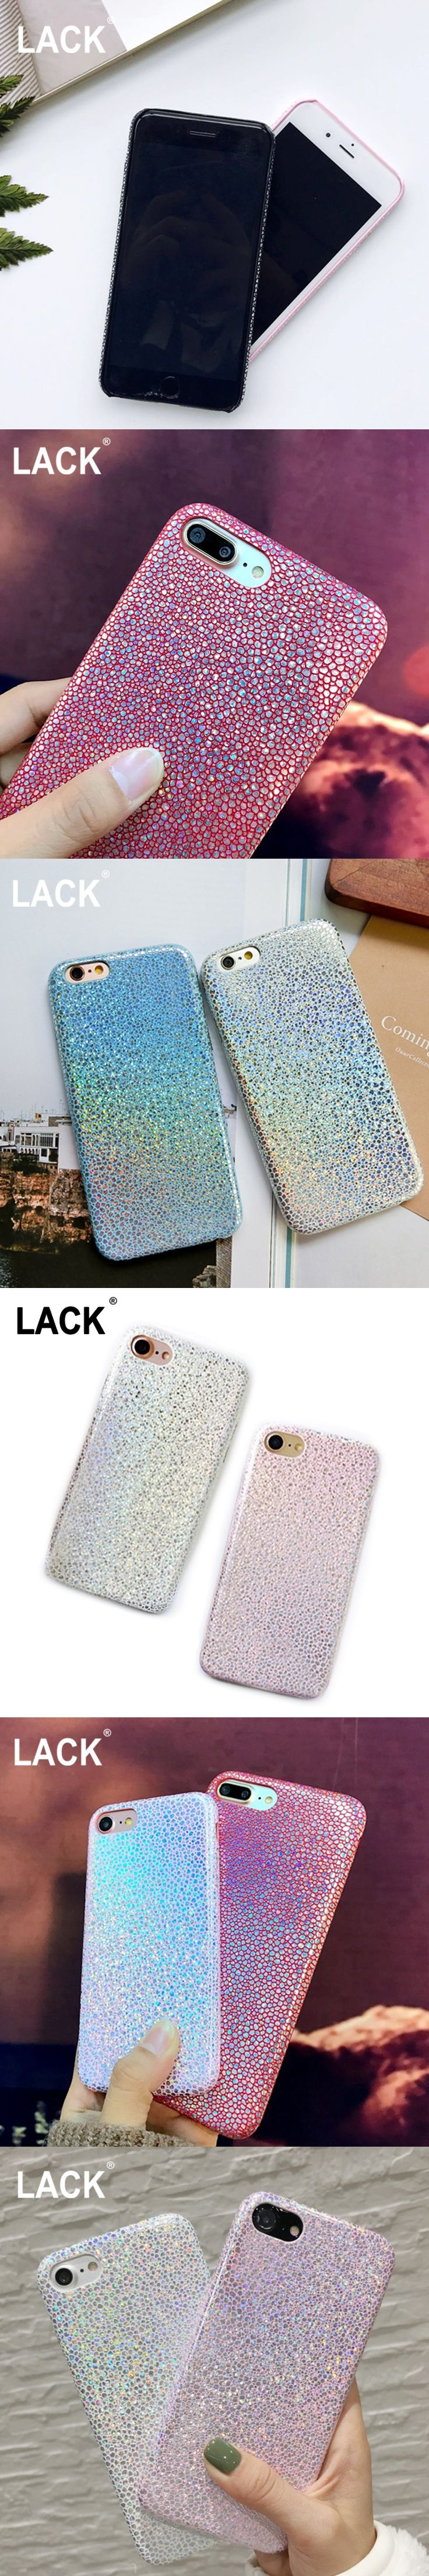 LACK Glitter Bling Phone Case For iPhone 7 7 Plus Fashion Shining Colorful Gradient Laser Case Luxury Leather Soft Cover